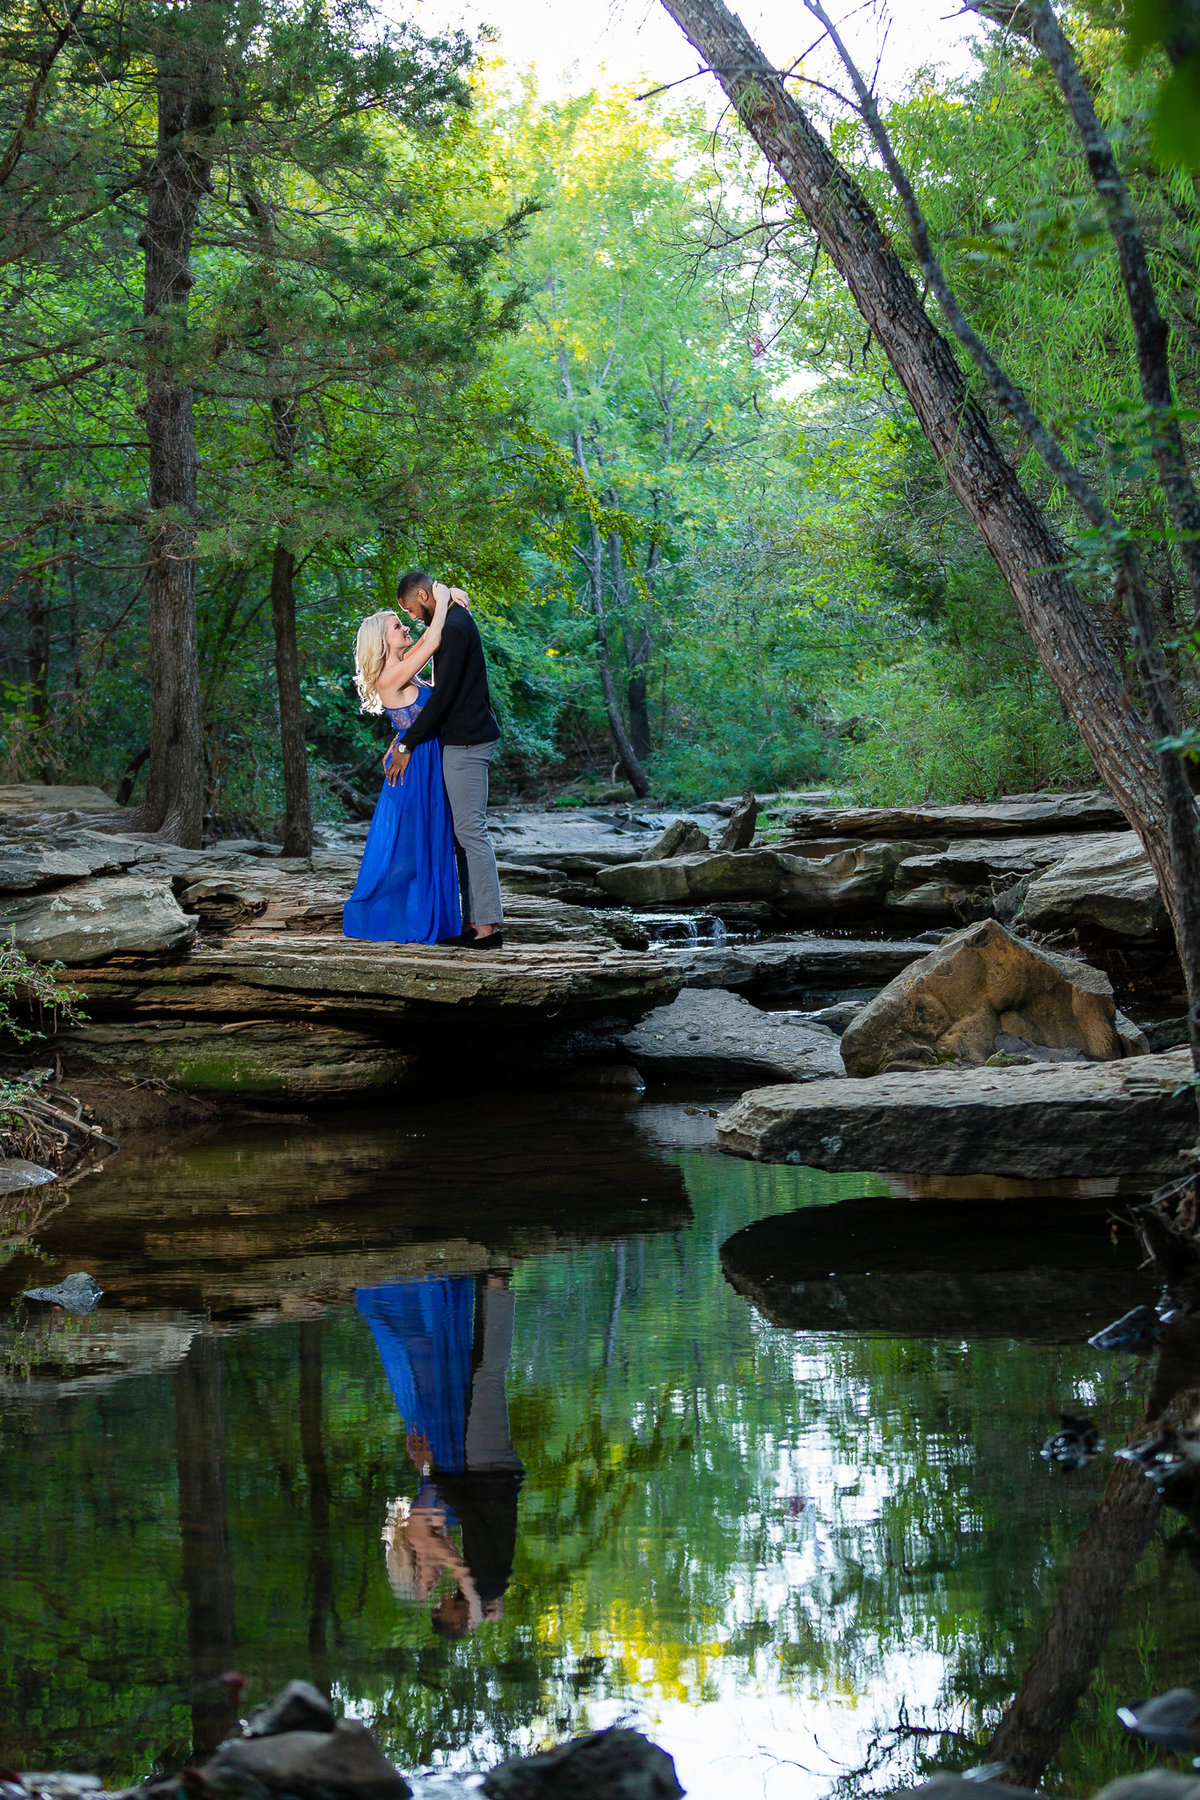 Stone_Creek_Park_Engagement_Flower_Mound_DFW_Morgan_Matthew-19